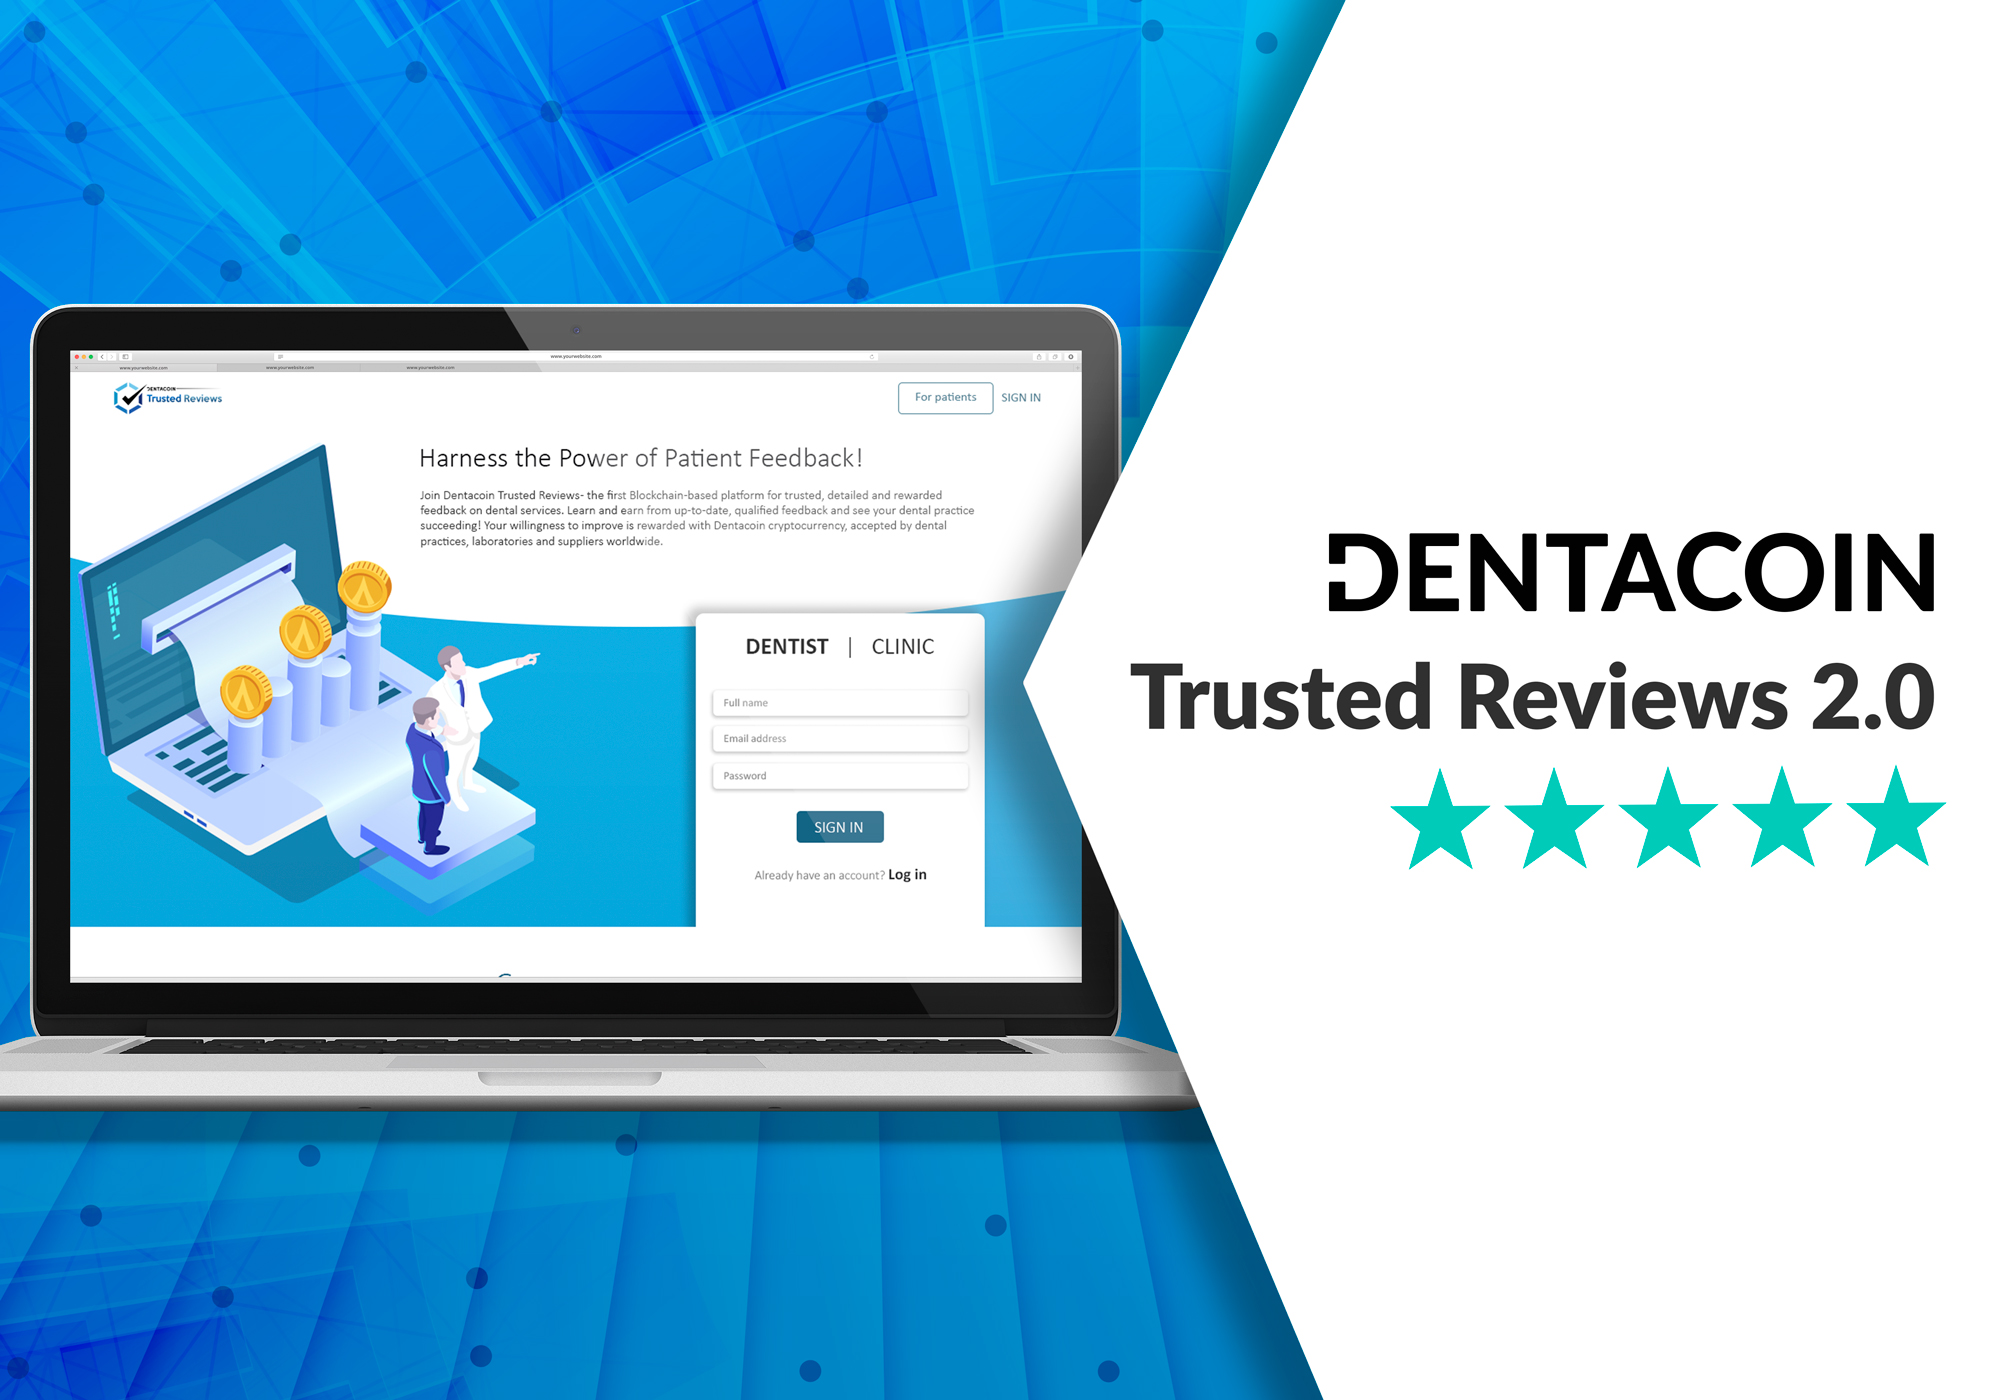 Dentacoin trusted reviews